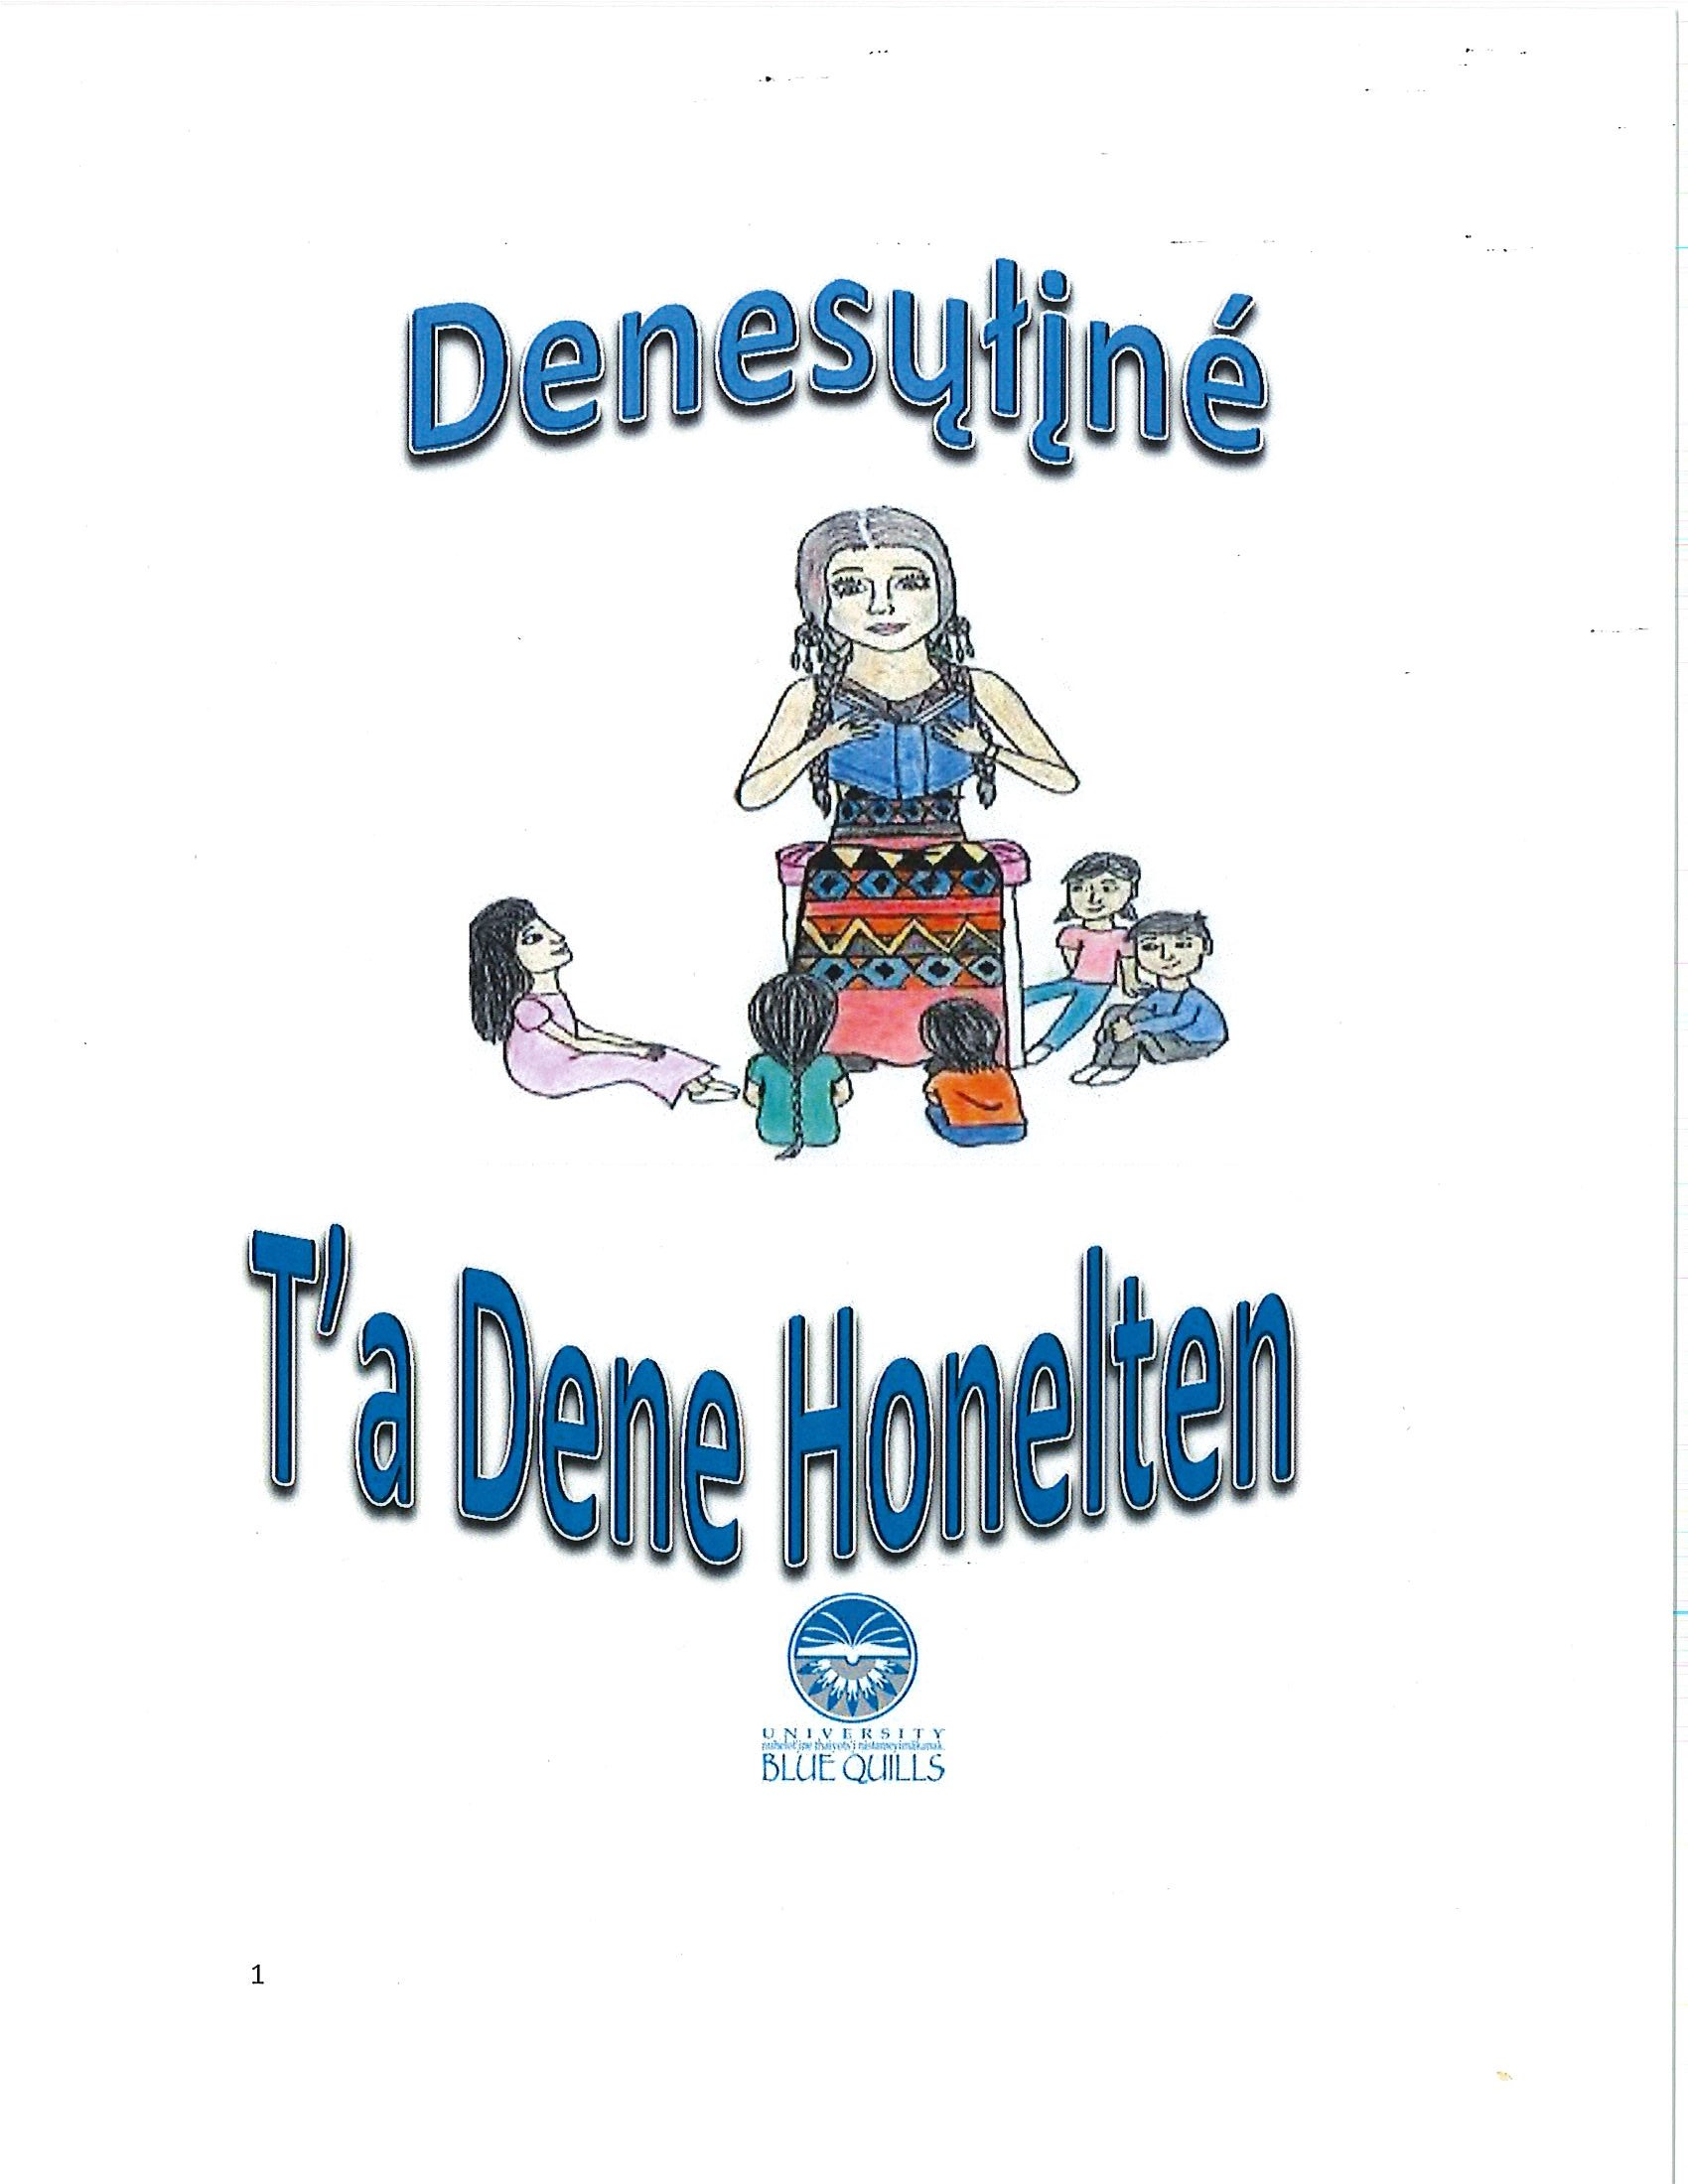 Dënesųłiné Book Of Games Image